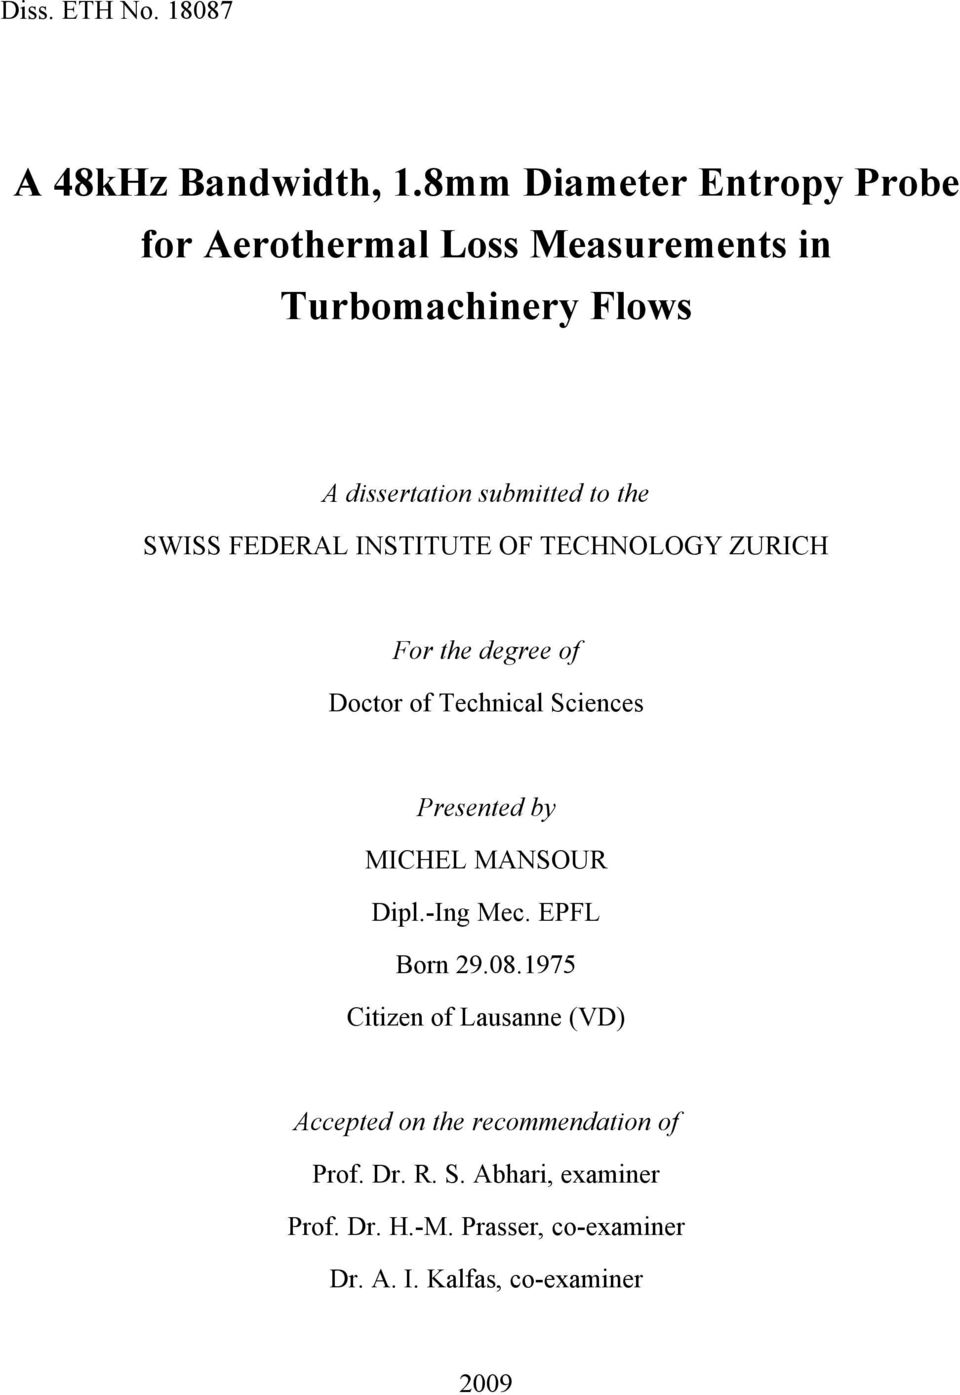 SWISS FEDERAL INSTITUTE OF TECHNOLOGY ZURICH For the degree of Doctor of Technical Sciences Presented by MICHEL MANSOUR